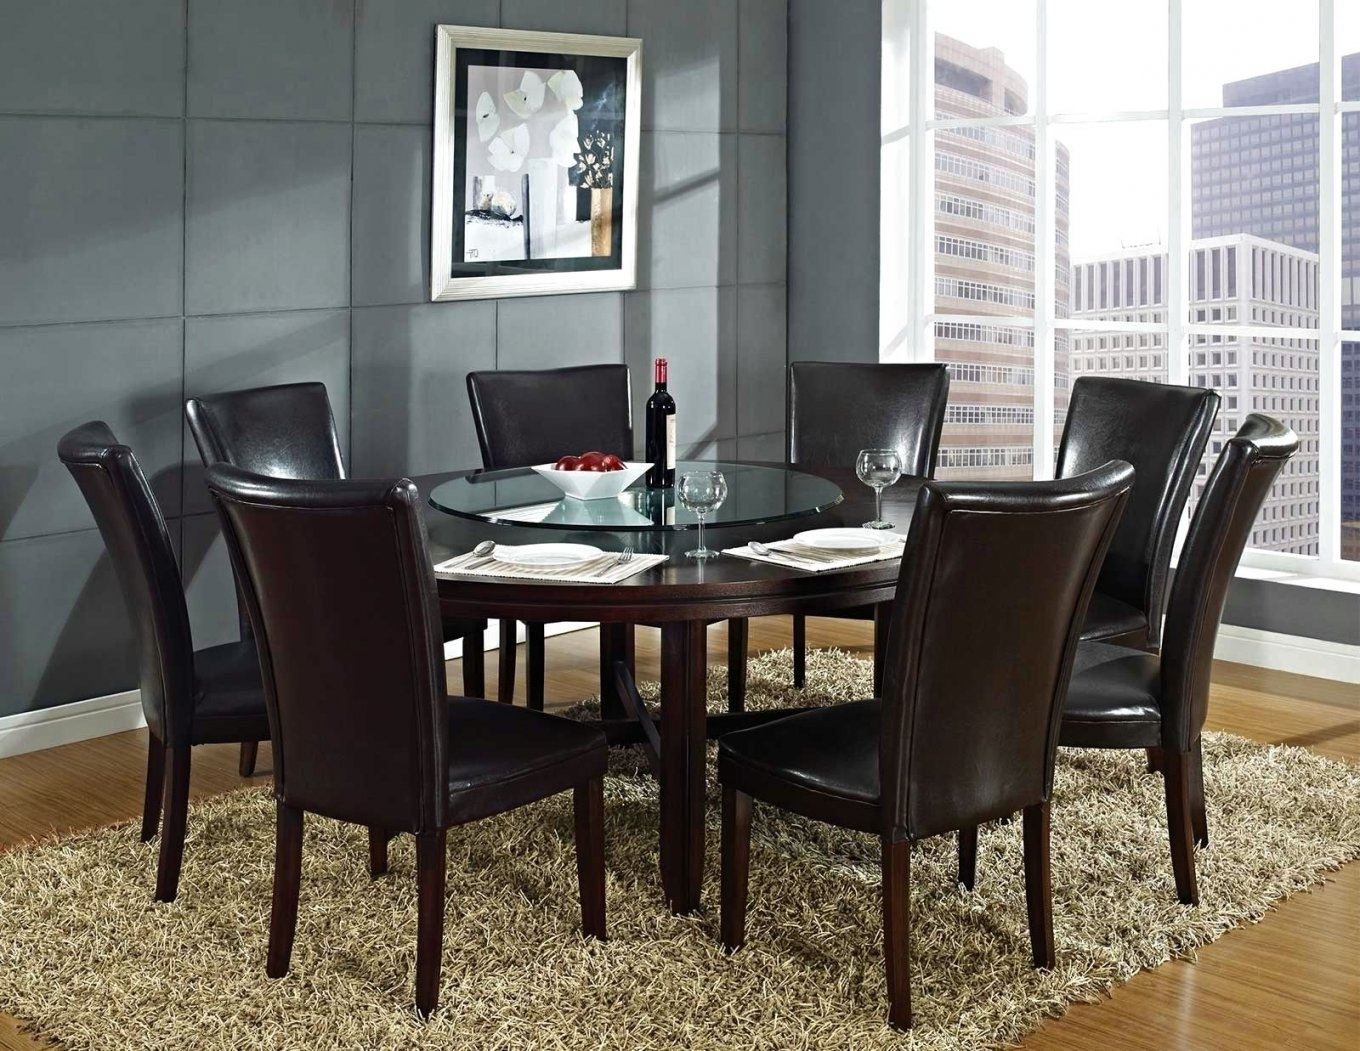 Fashionable Interesting Ideas 6 Person Round Dining Table Pretty Design Person Pertaining To 6 Person Round Dining Tables (View 13 of 25)